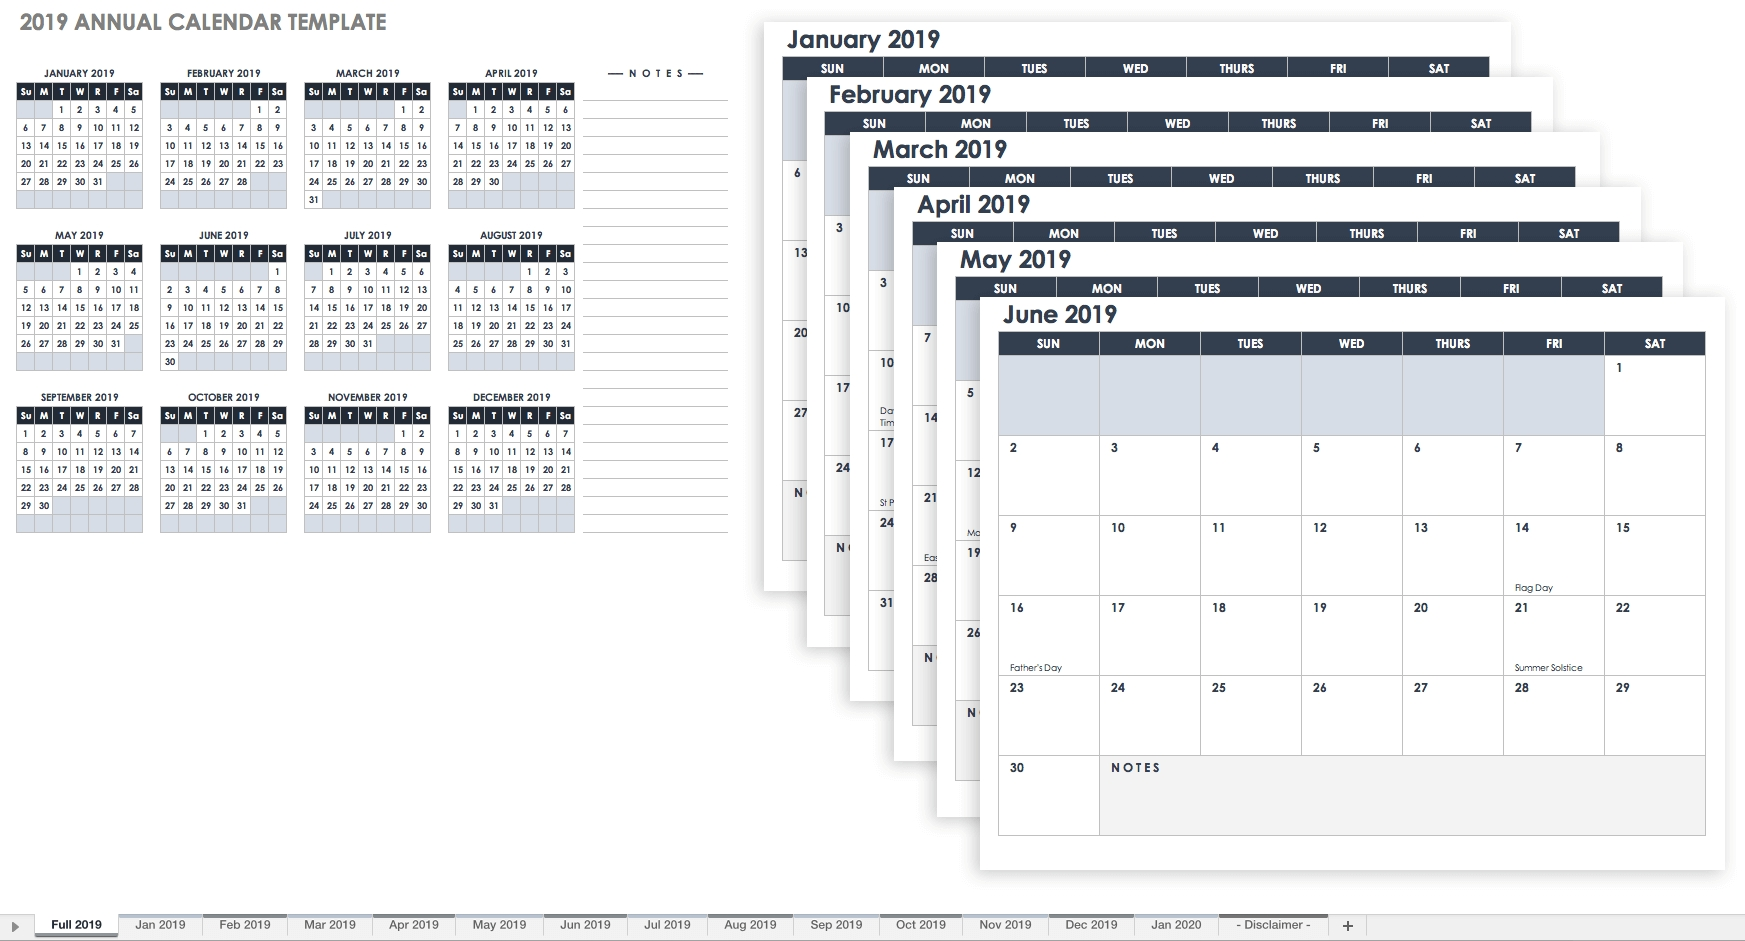 15 Free Monthly Calendar Templates | Smartsheet intended for Large Box Printable Calendar 2020 Google